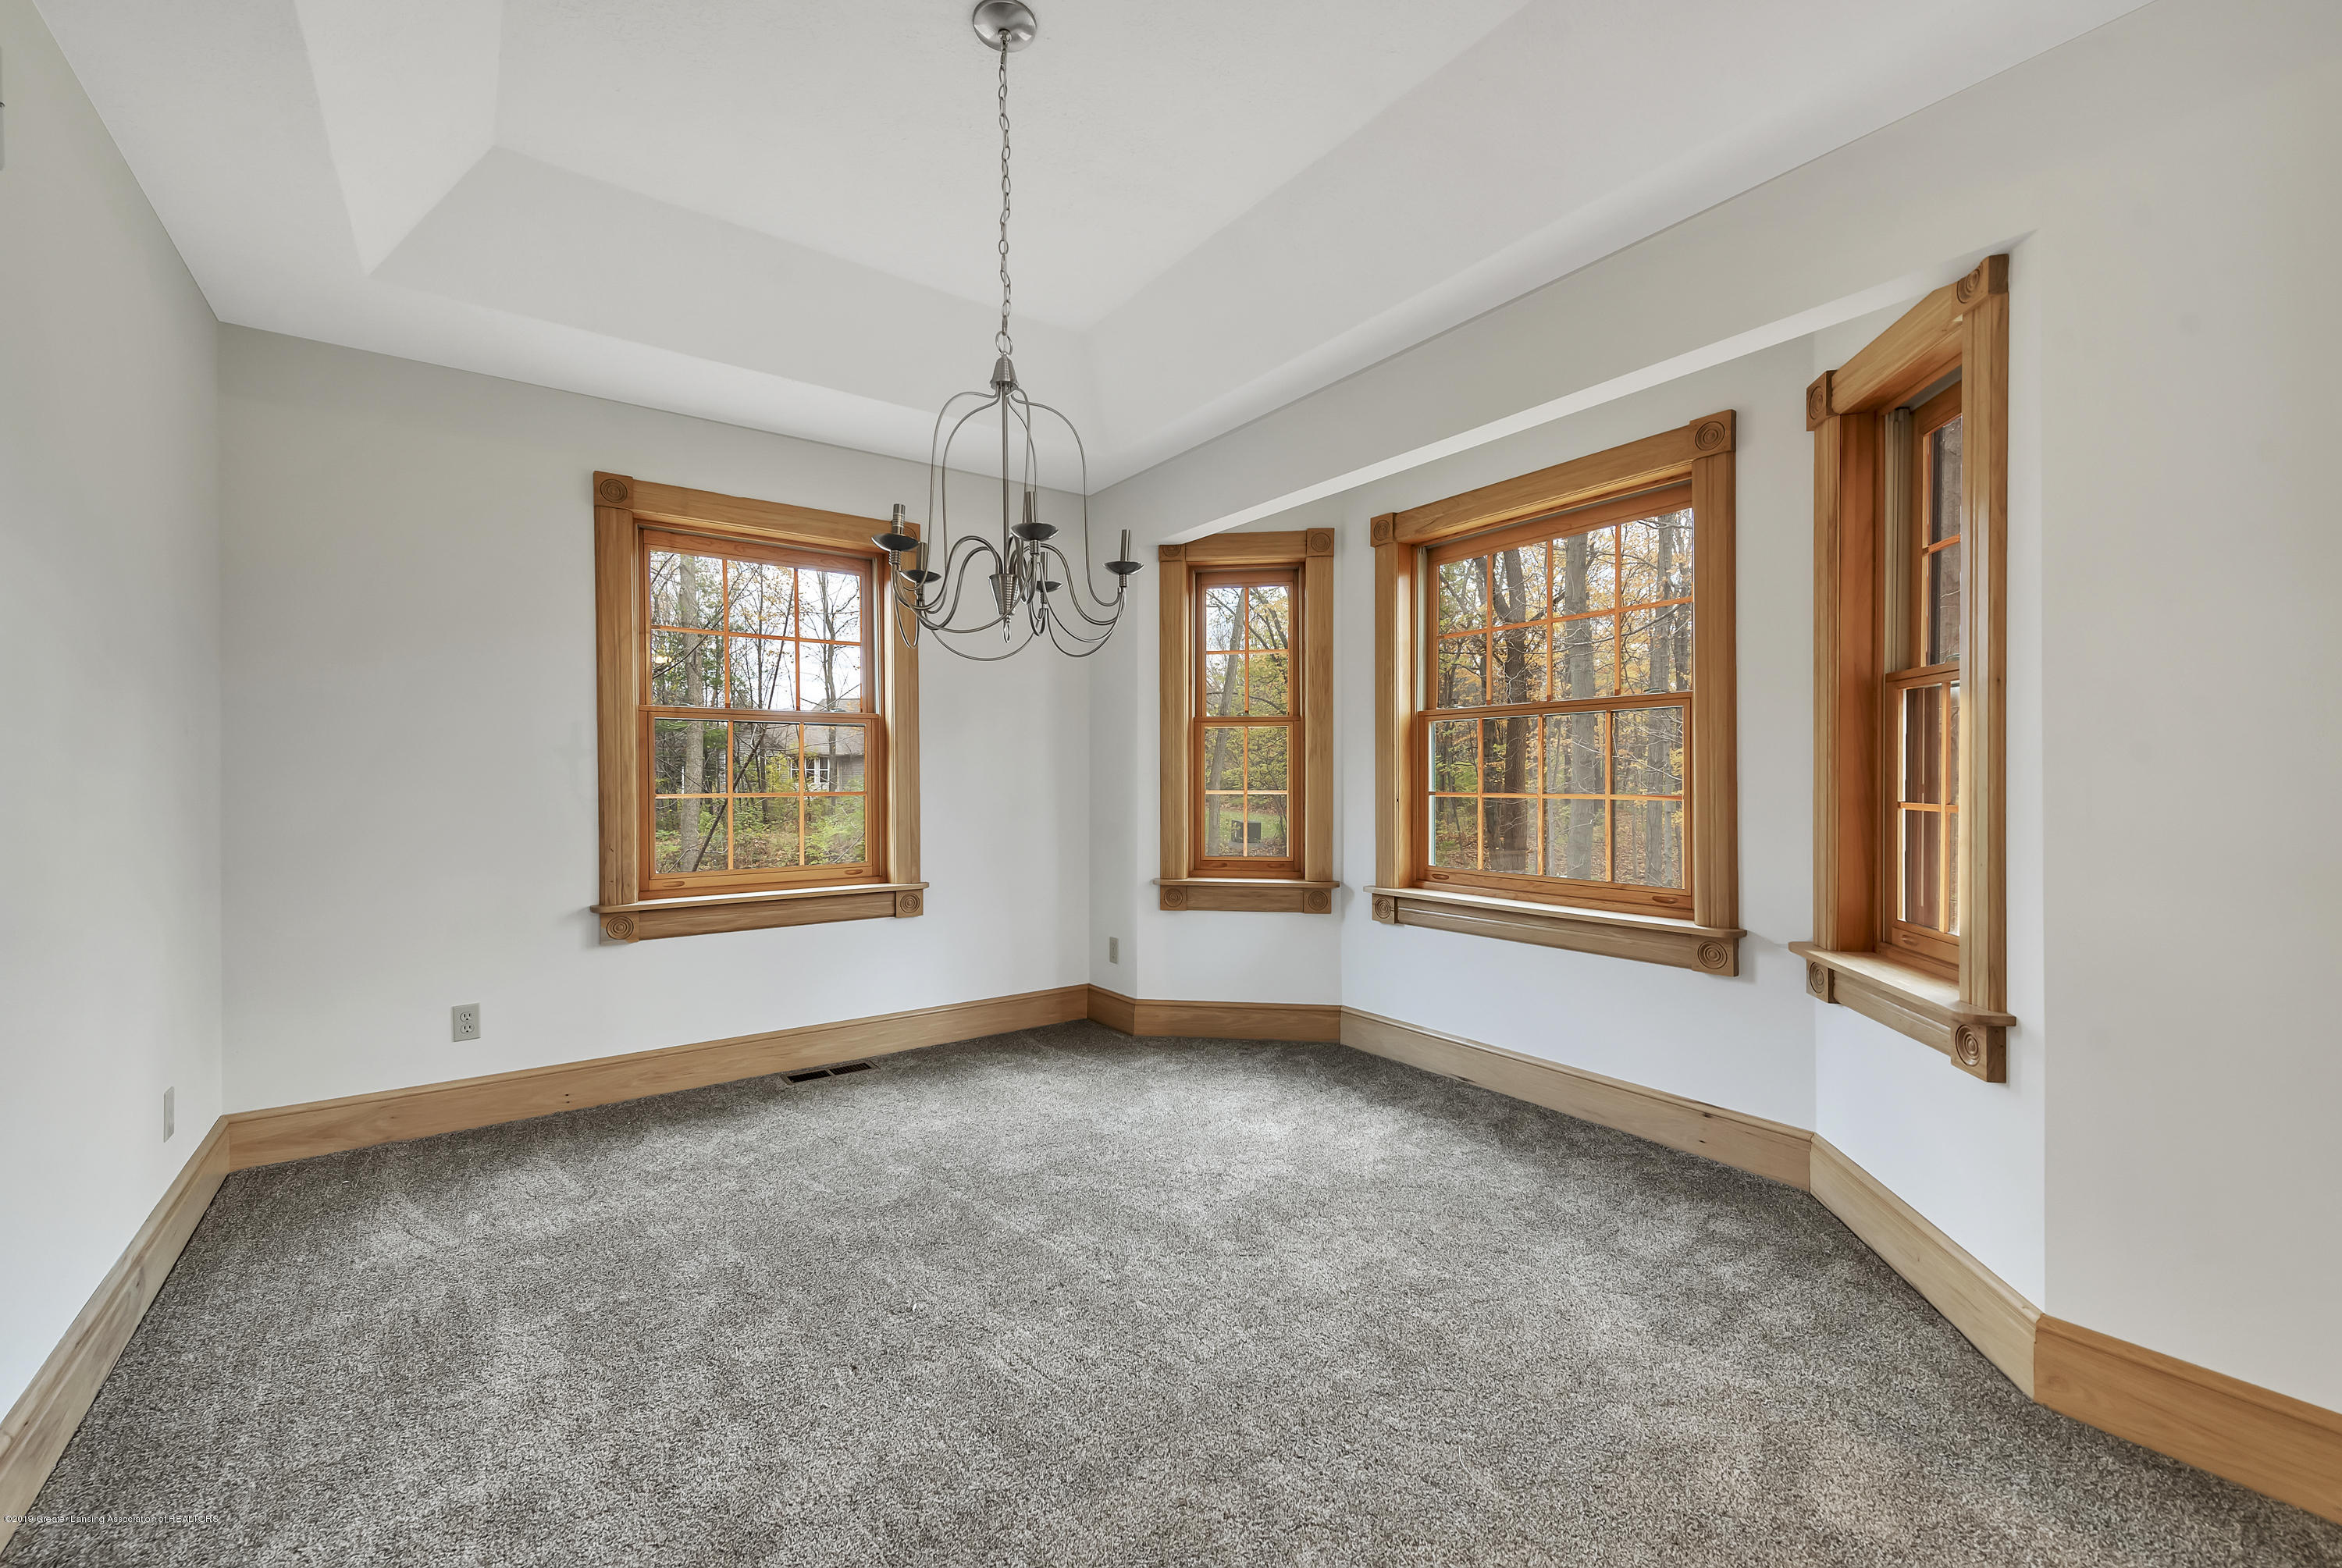 10865 Barnes Rd - 10865-Barnes-Rd-WindowStill-Real-Estate- - 10